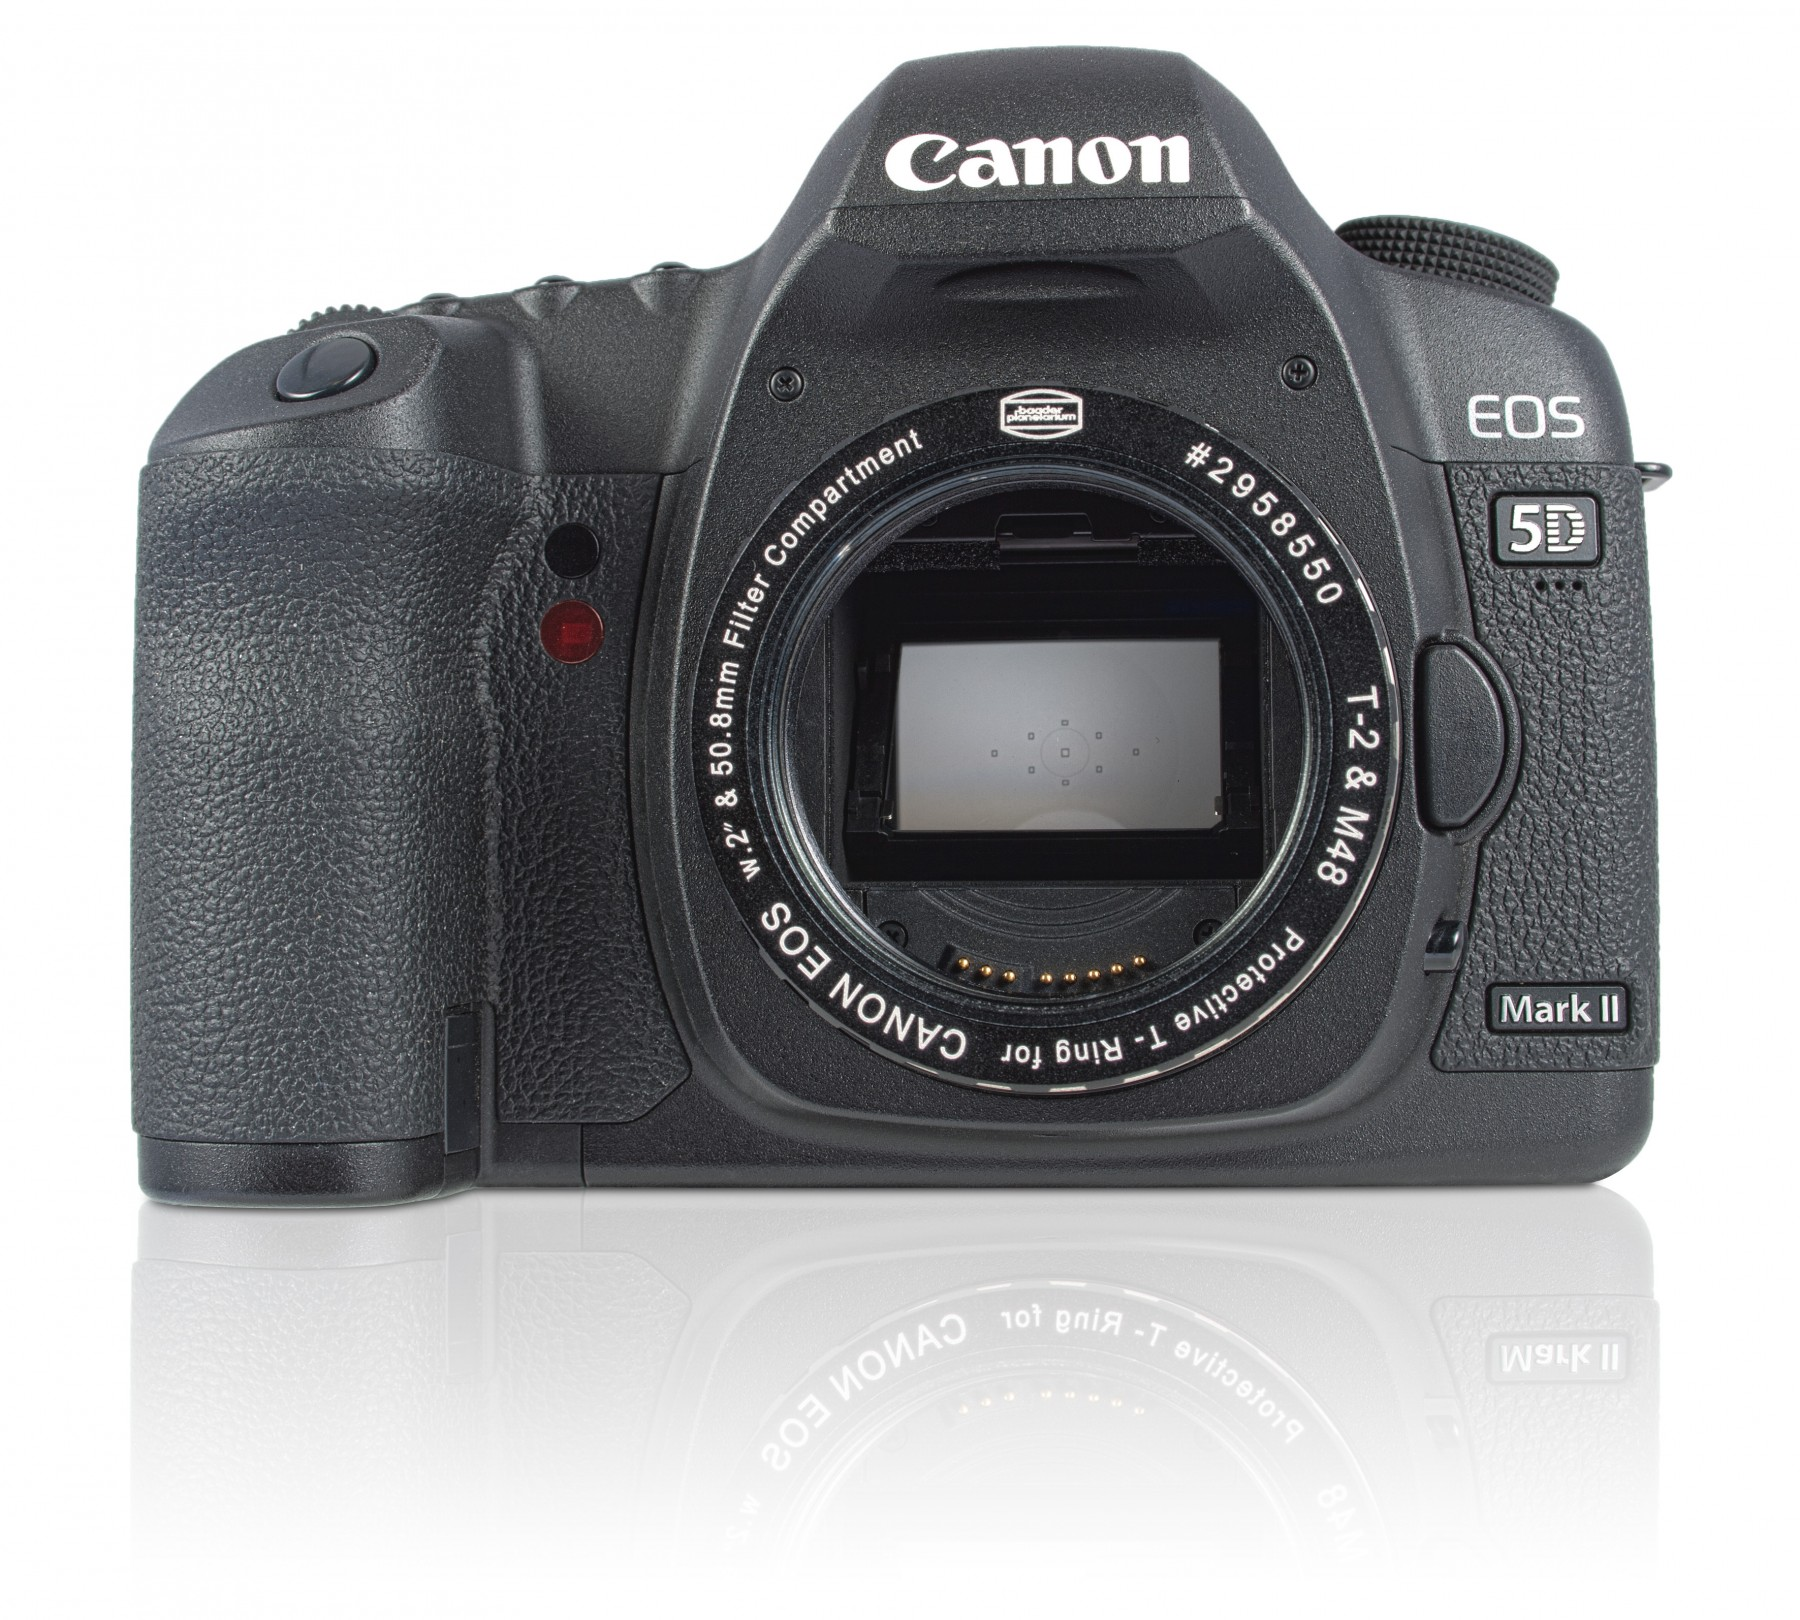 Canon EOS Protective T-Ring in Standard Supply without additional filter. Camera not included